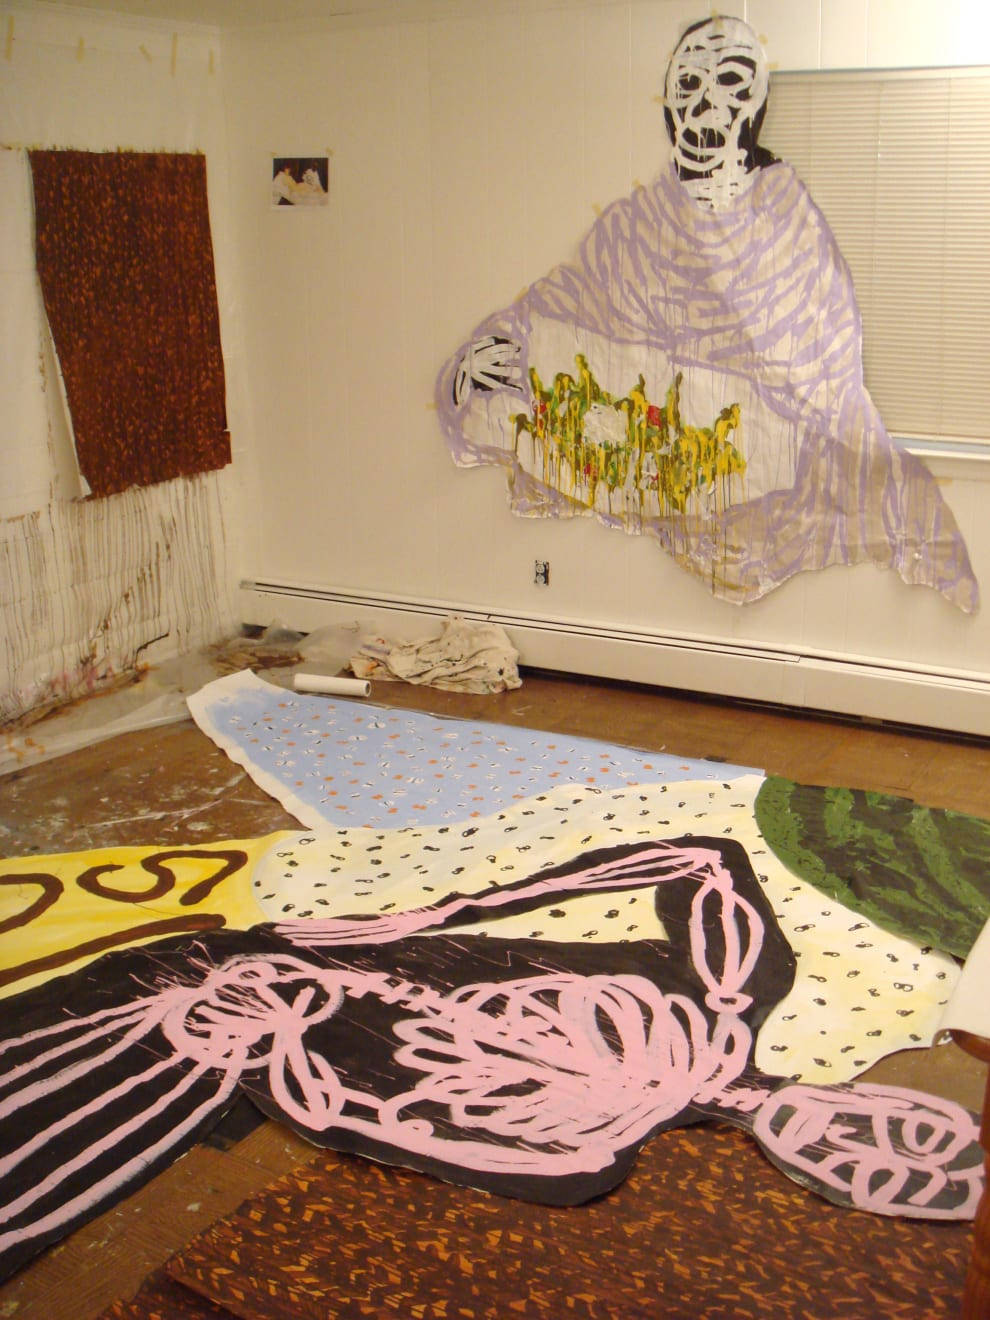 Olympia In progress at Westchester studio. Assembling the composition. 2007